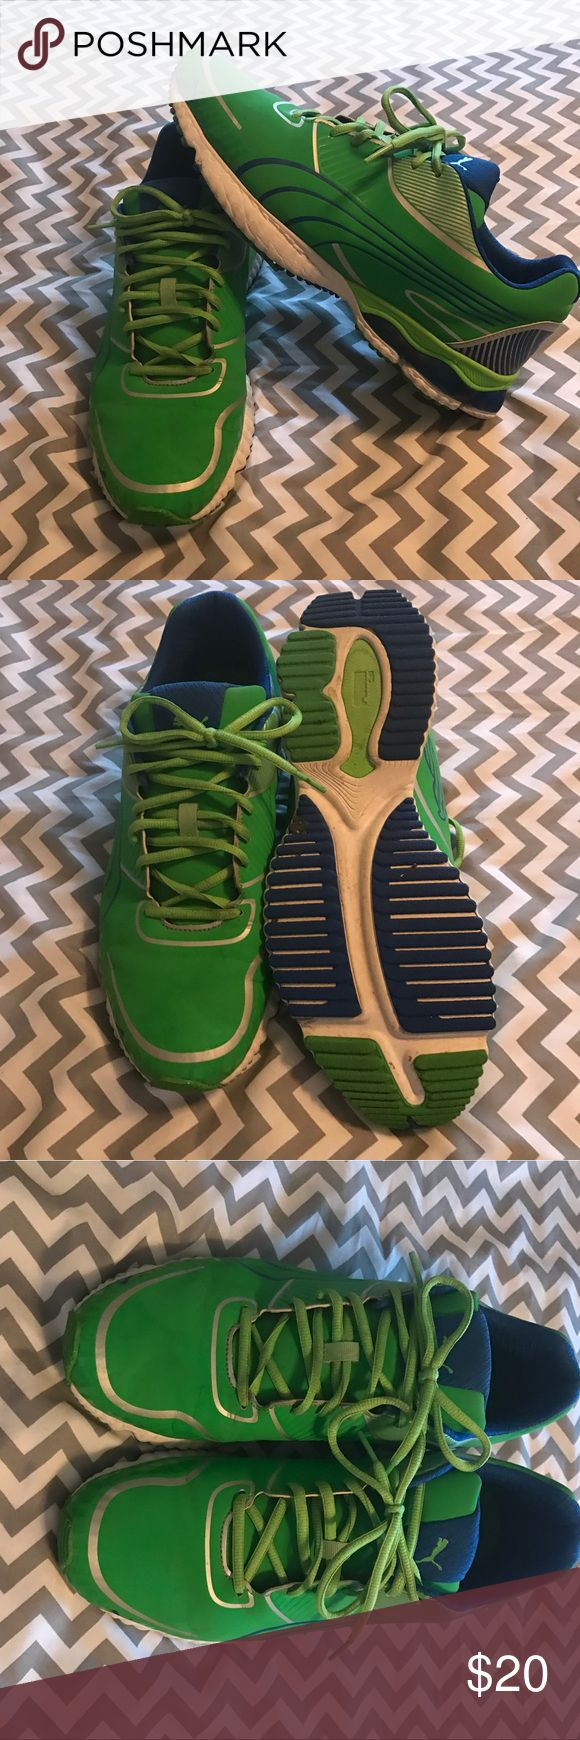 Men's Puma Running Shoes Men's Puma Running Shoes - Size 12. These have been worn, but have a lot of life left!!!!!! Puma Shoes Athletic Shoes